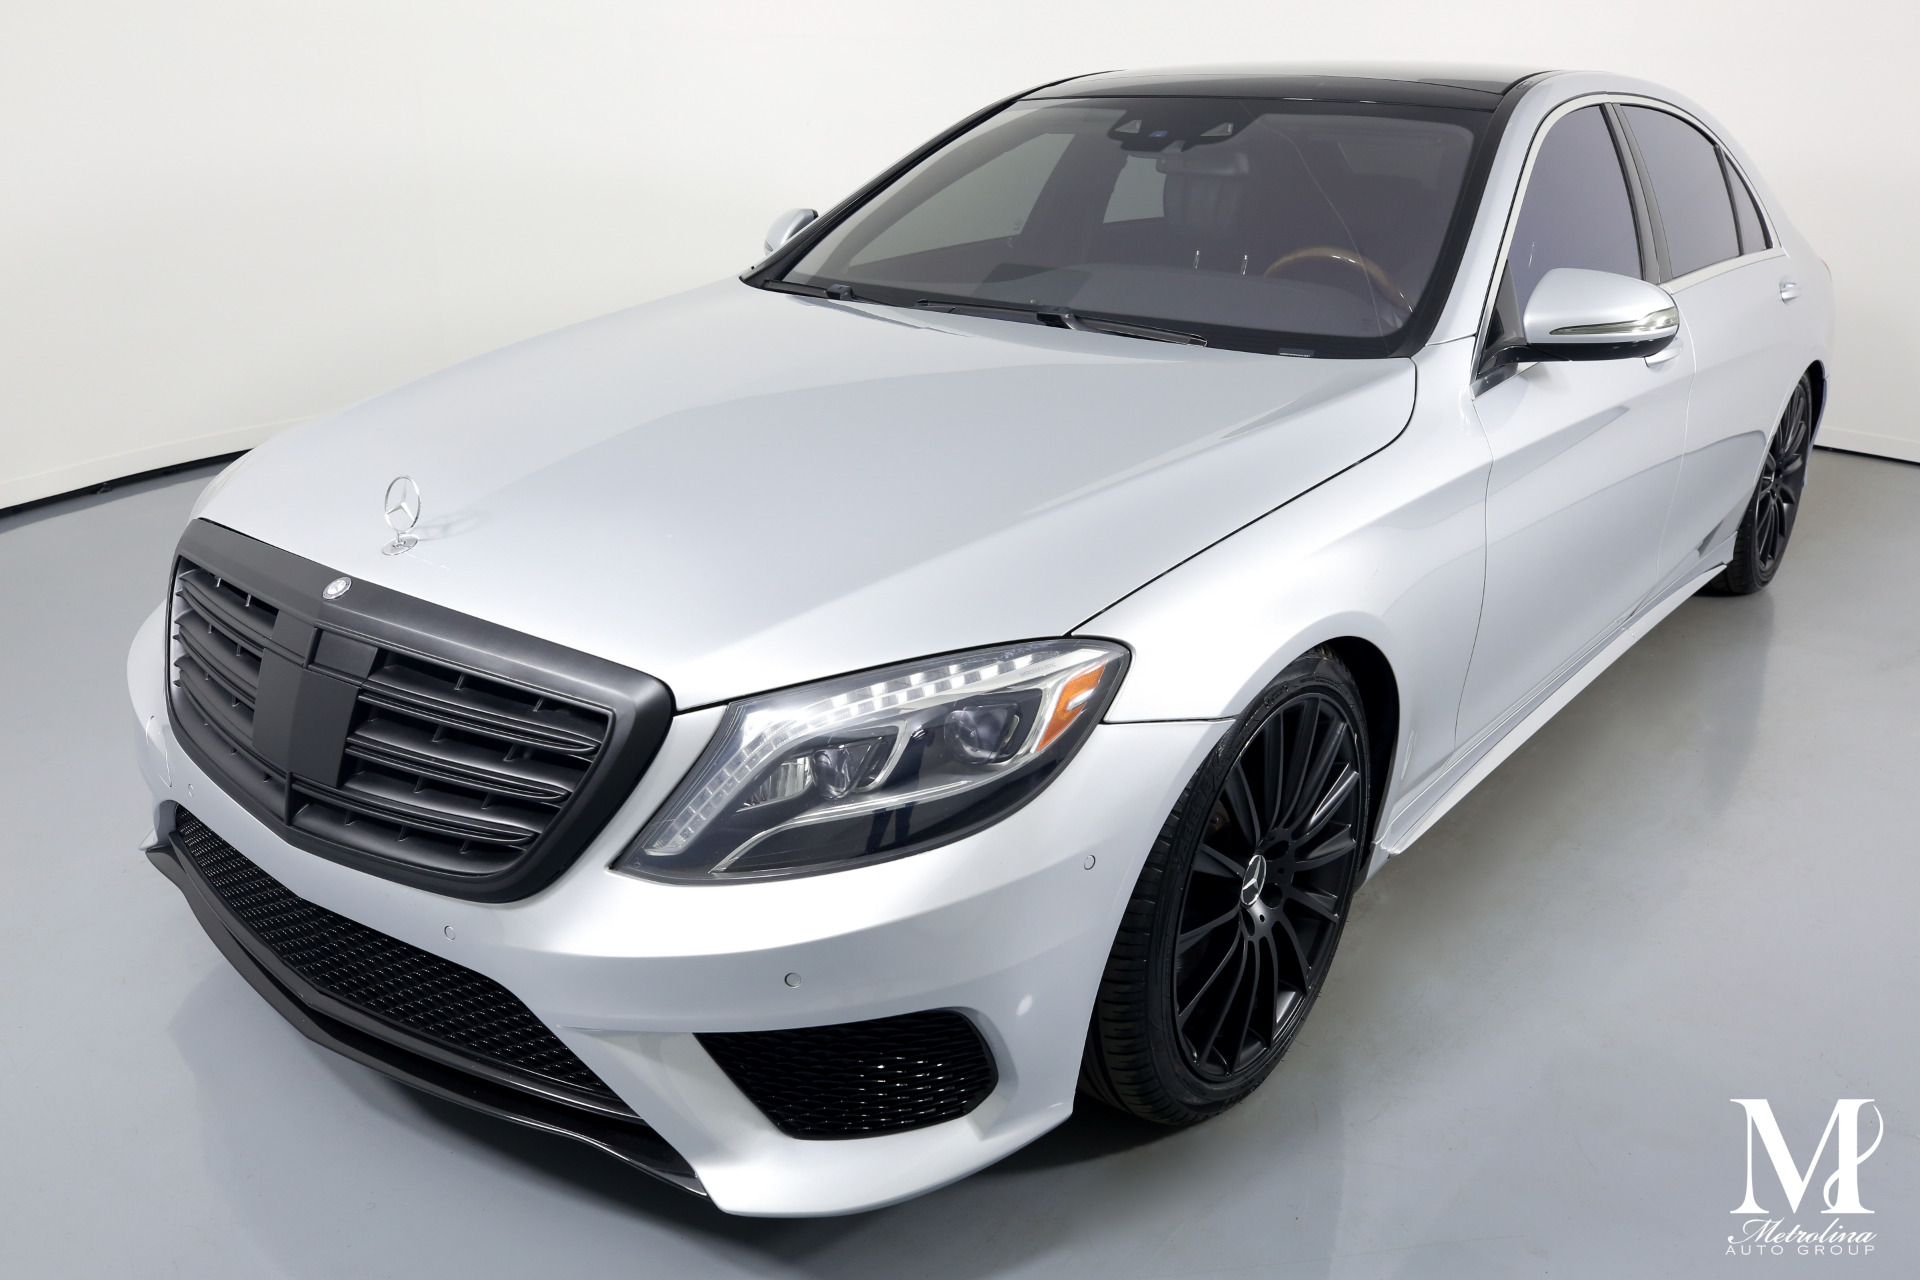 Used 2014 Mercedes-Benz S-Class S 550 for sale $39,996 at Metrolina Auto Group in Charlotte NC 28217 - 4